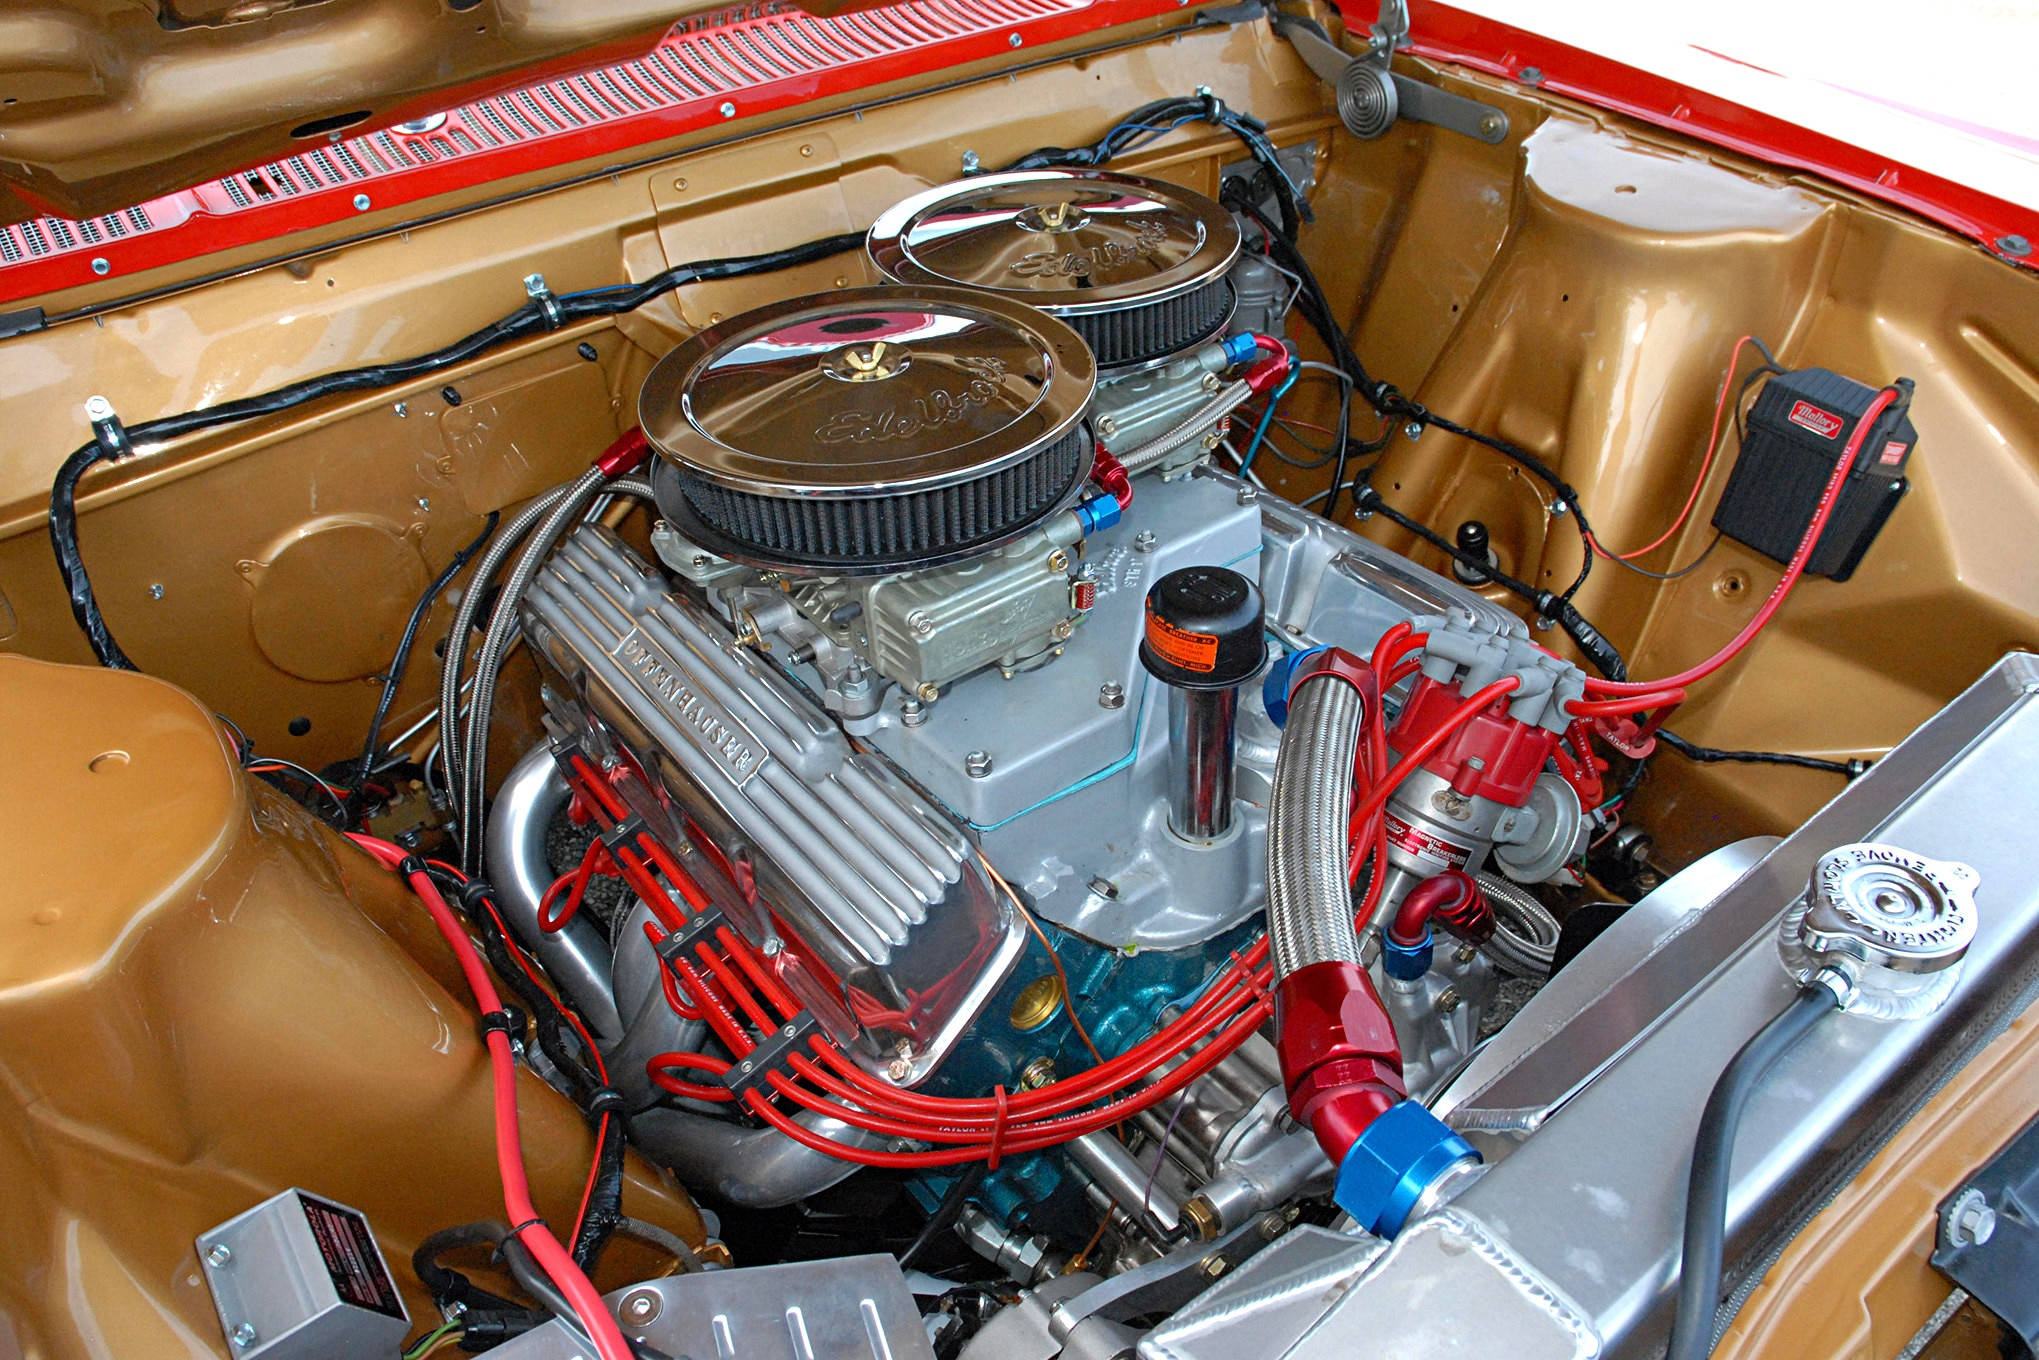 Powering the reincarnated Topel Rambler is a 600hp 390 Rambler V-8 stroked and poked by R&R Engines. It now measures 426 ci. Internals include a Crower cam and valvetrain, a stroked 390 AMC crank, a set of Crower connecting rods, and JE forged-aluminum pistons. The original Group 19 four-barrel intake and 650-cfm Holley carburetors are also along for the ride.